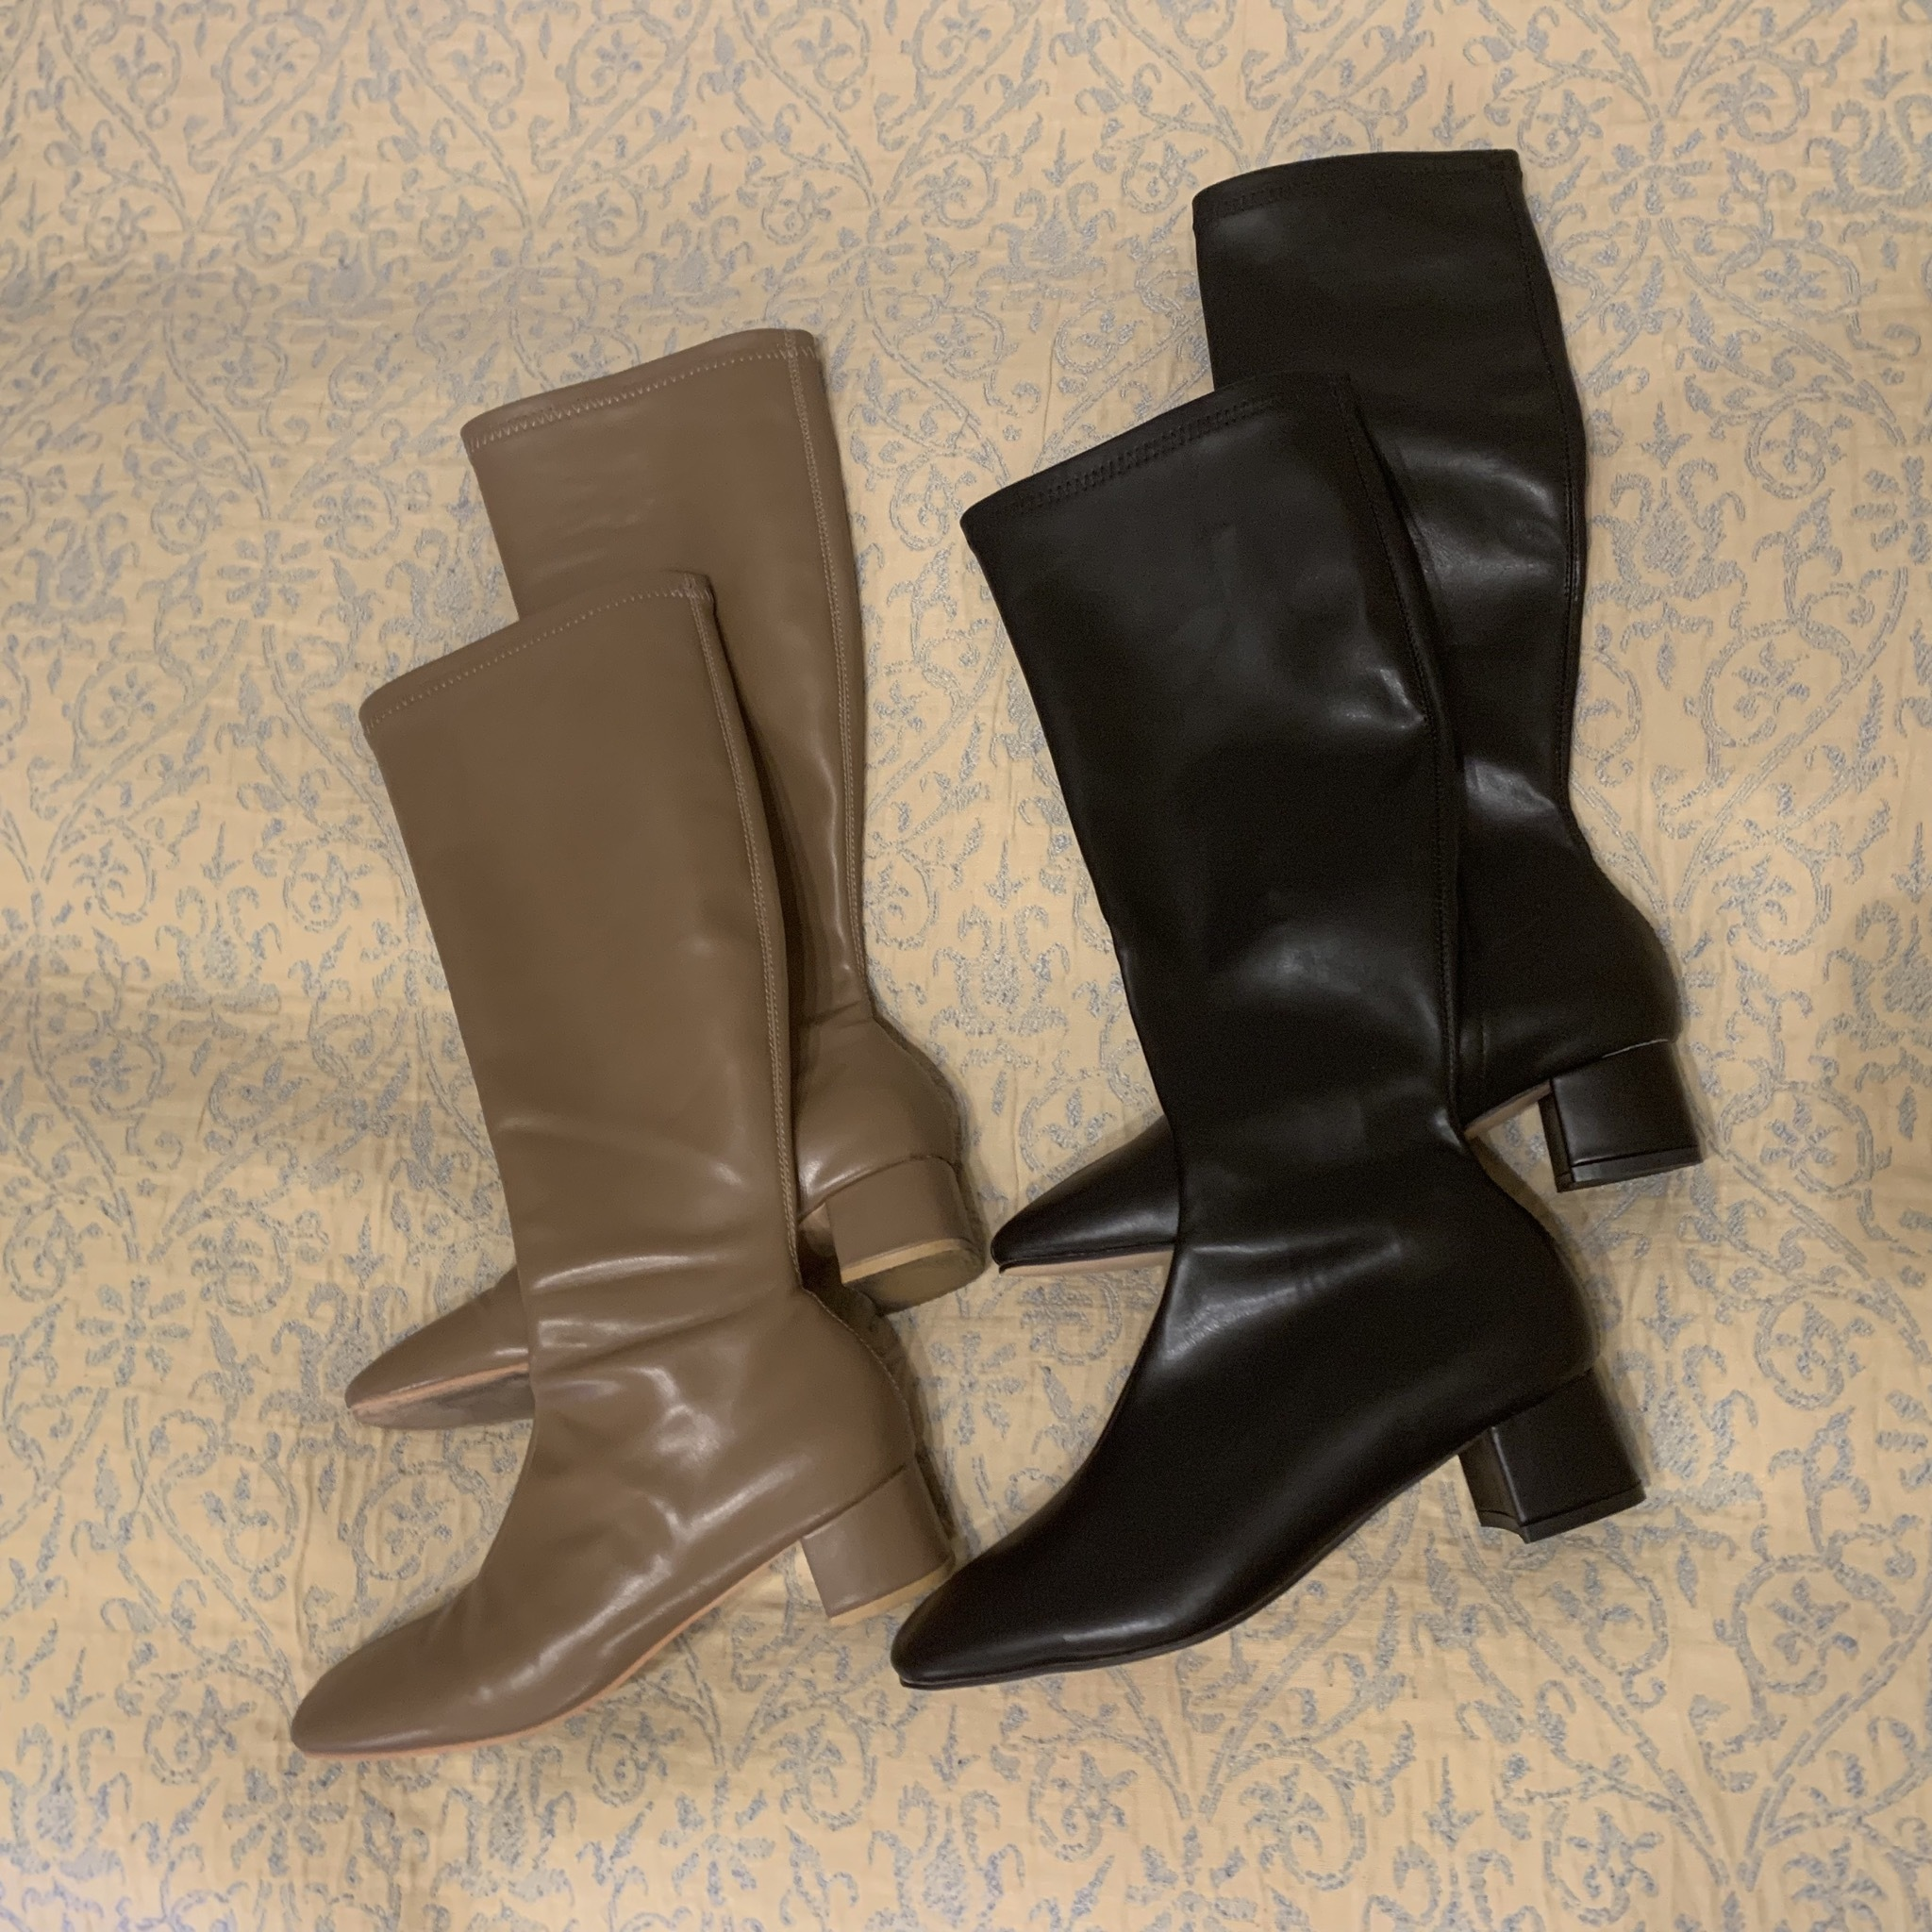 middle boots